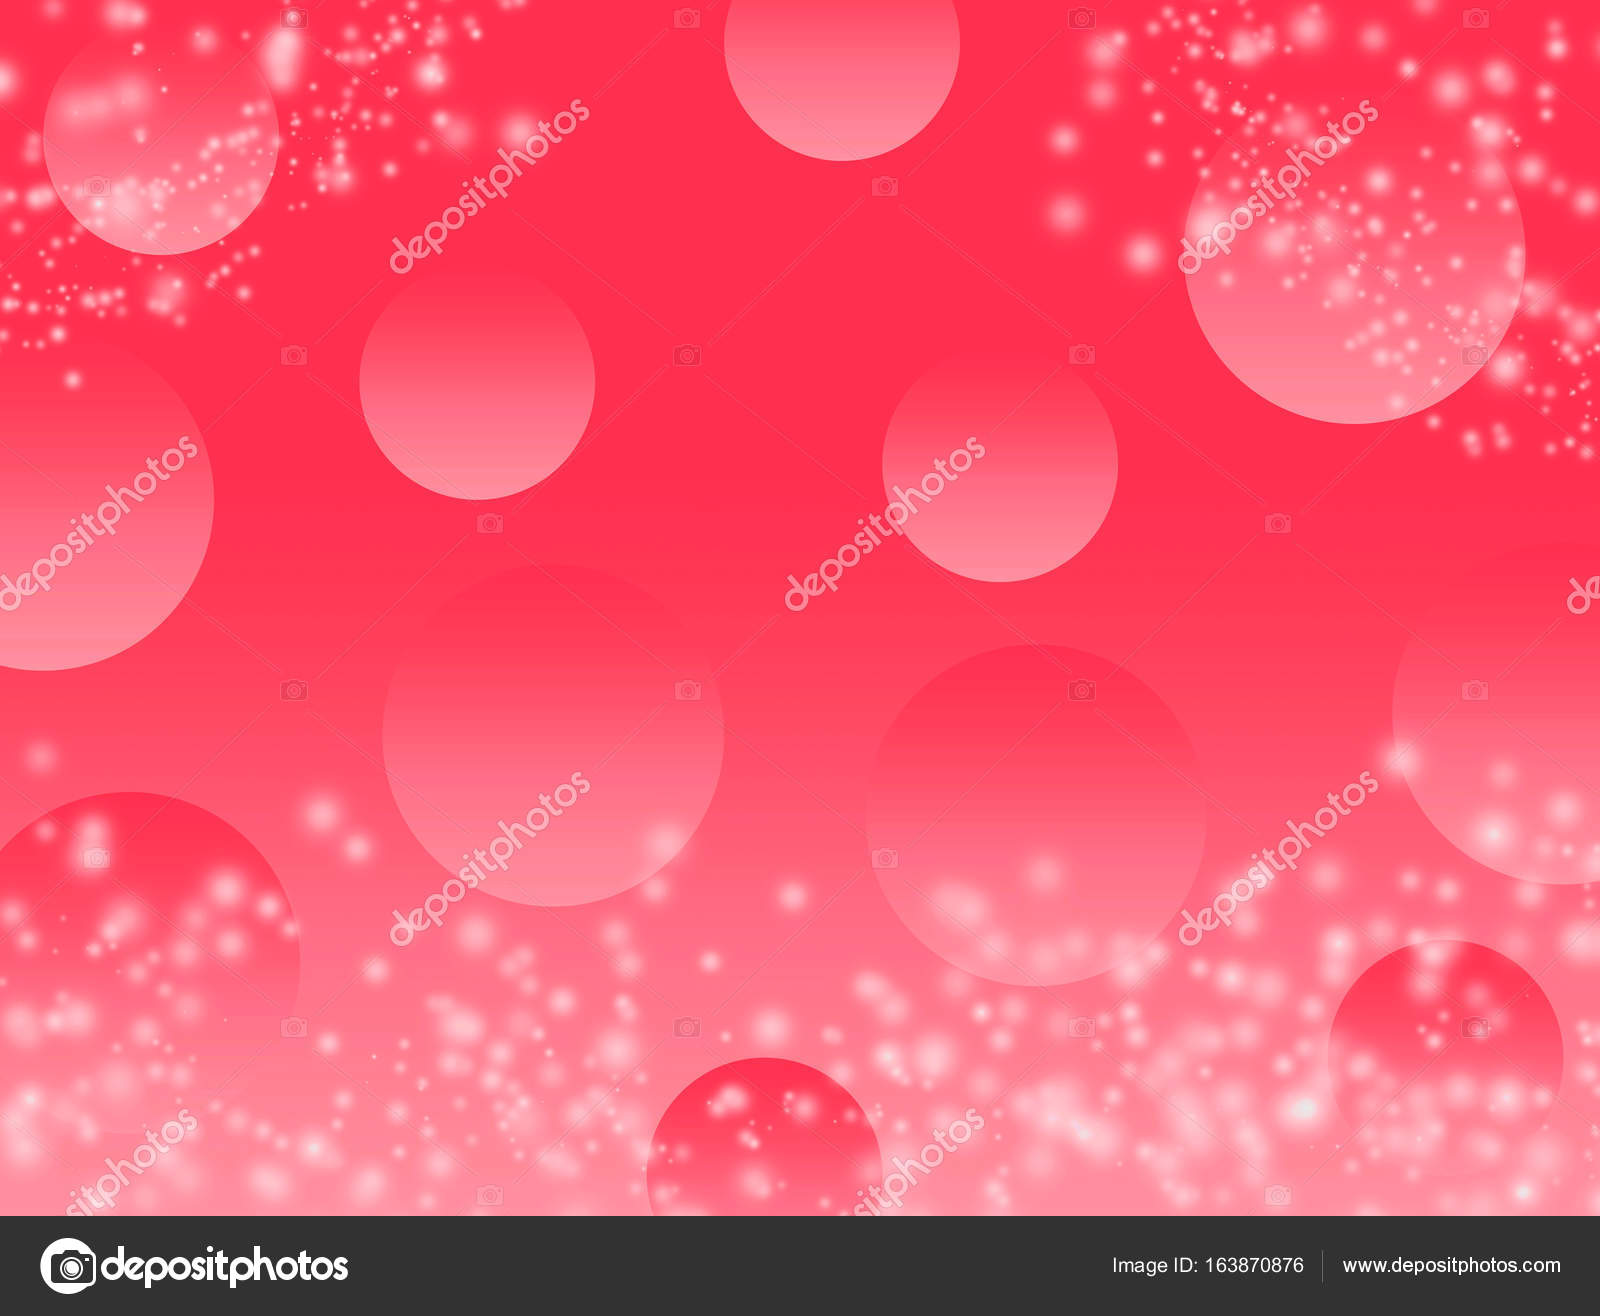 Red Bokeh Abstract Background Wallpaper Glitter Diamond For Wedding And Christmas Festival Concept Copy Space